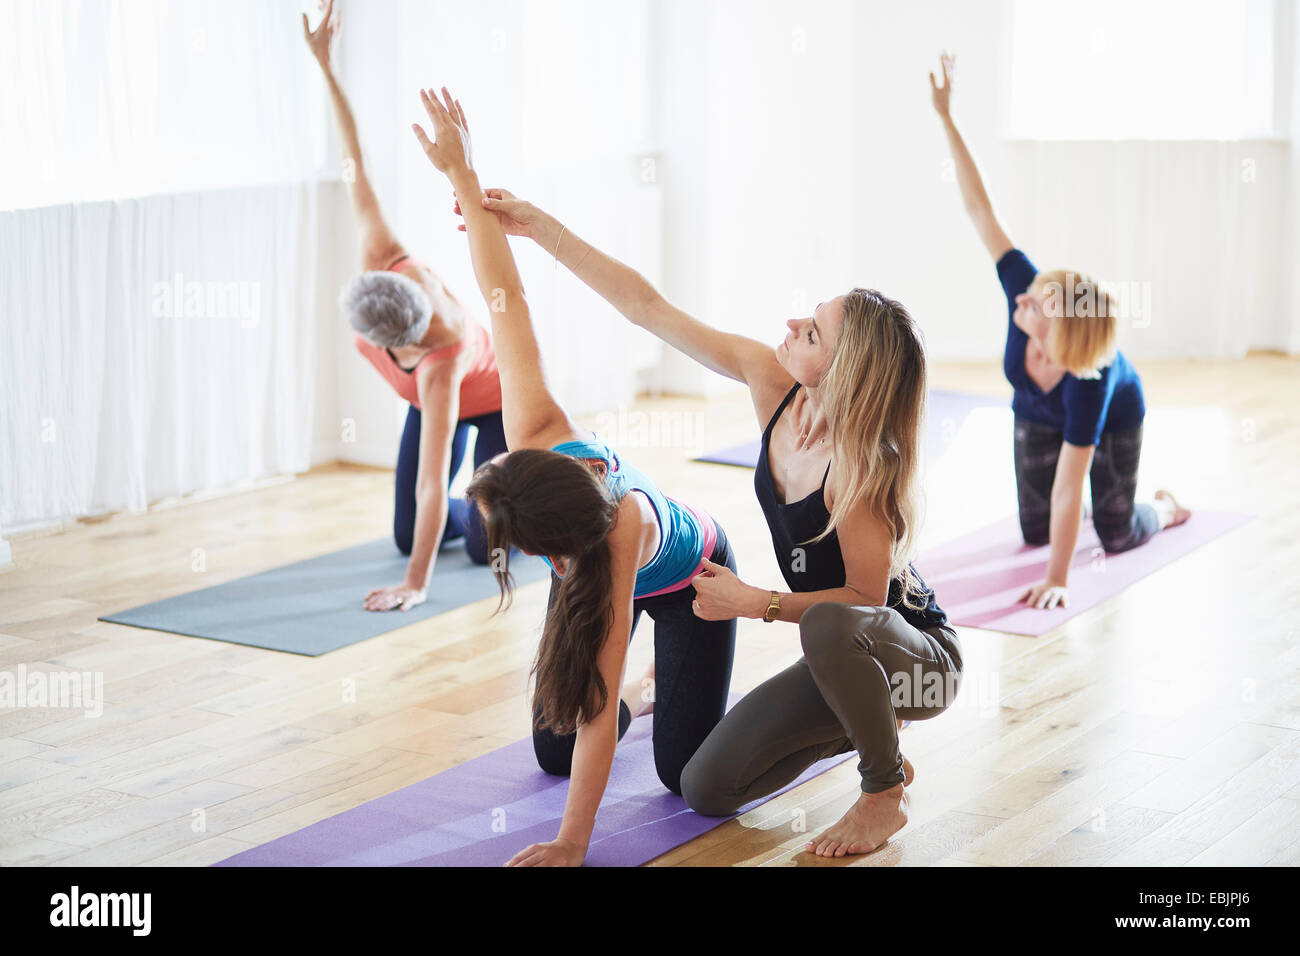 Women kneeling and raising arms in pilates class - Stock Image